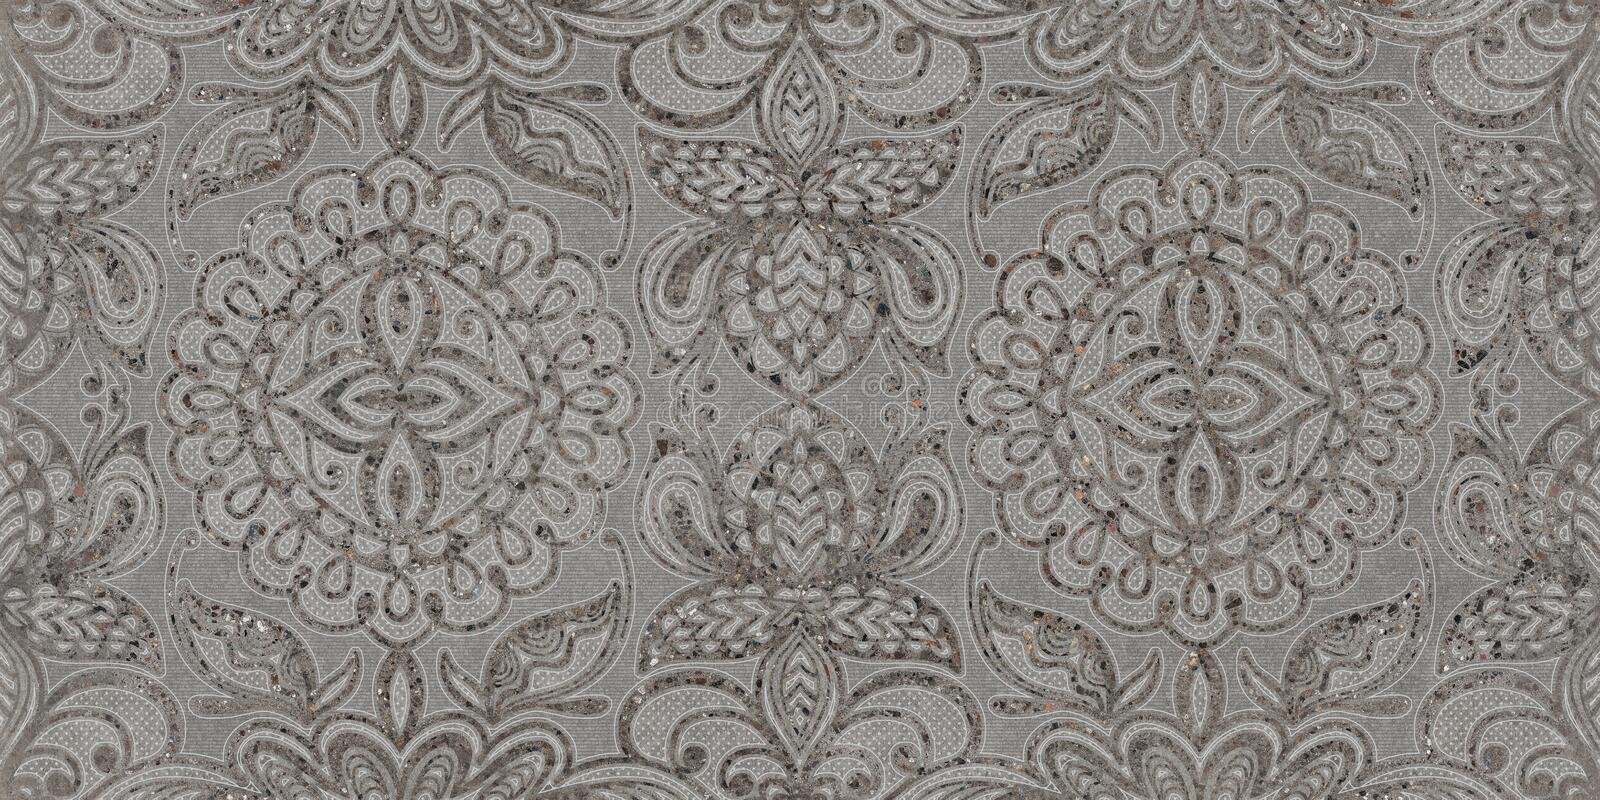 Gray ornament seamless background, pattern texture, digital wall tile design royalty free stock photo